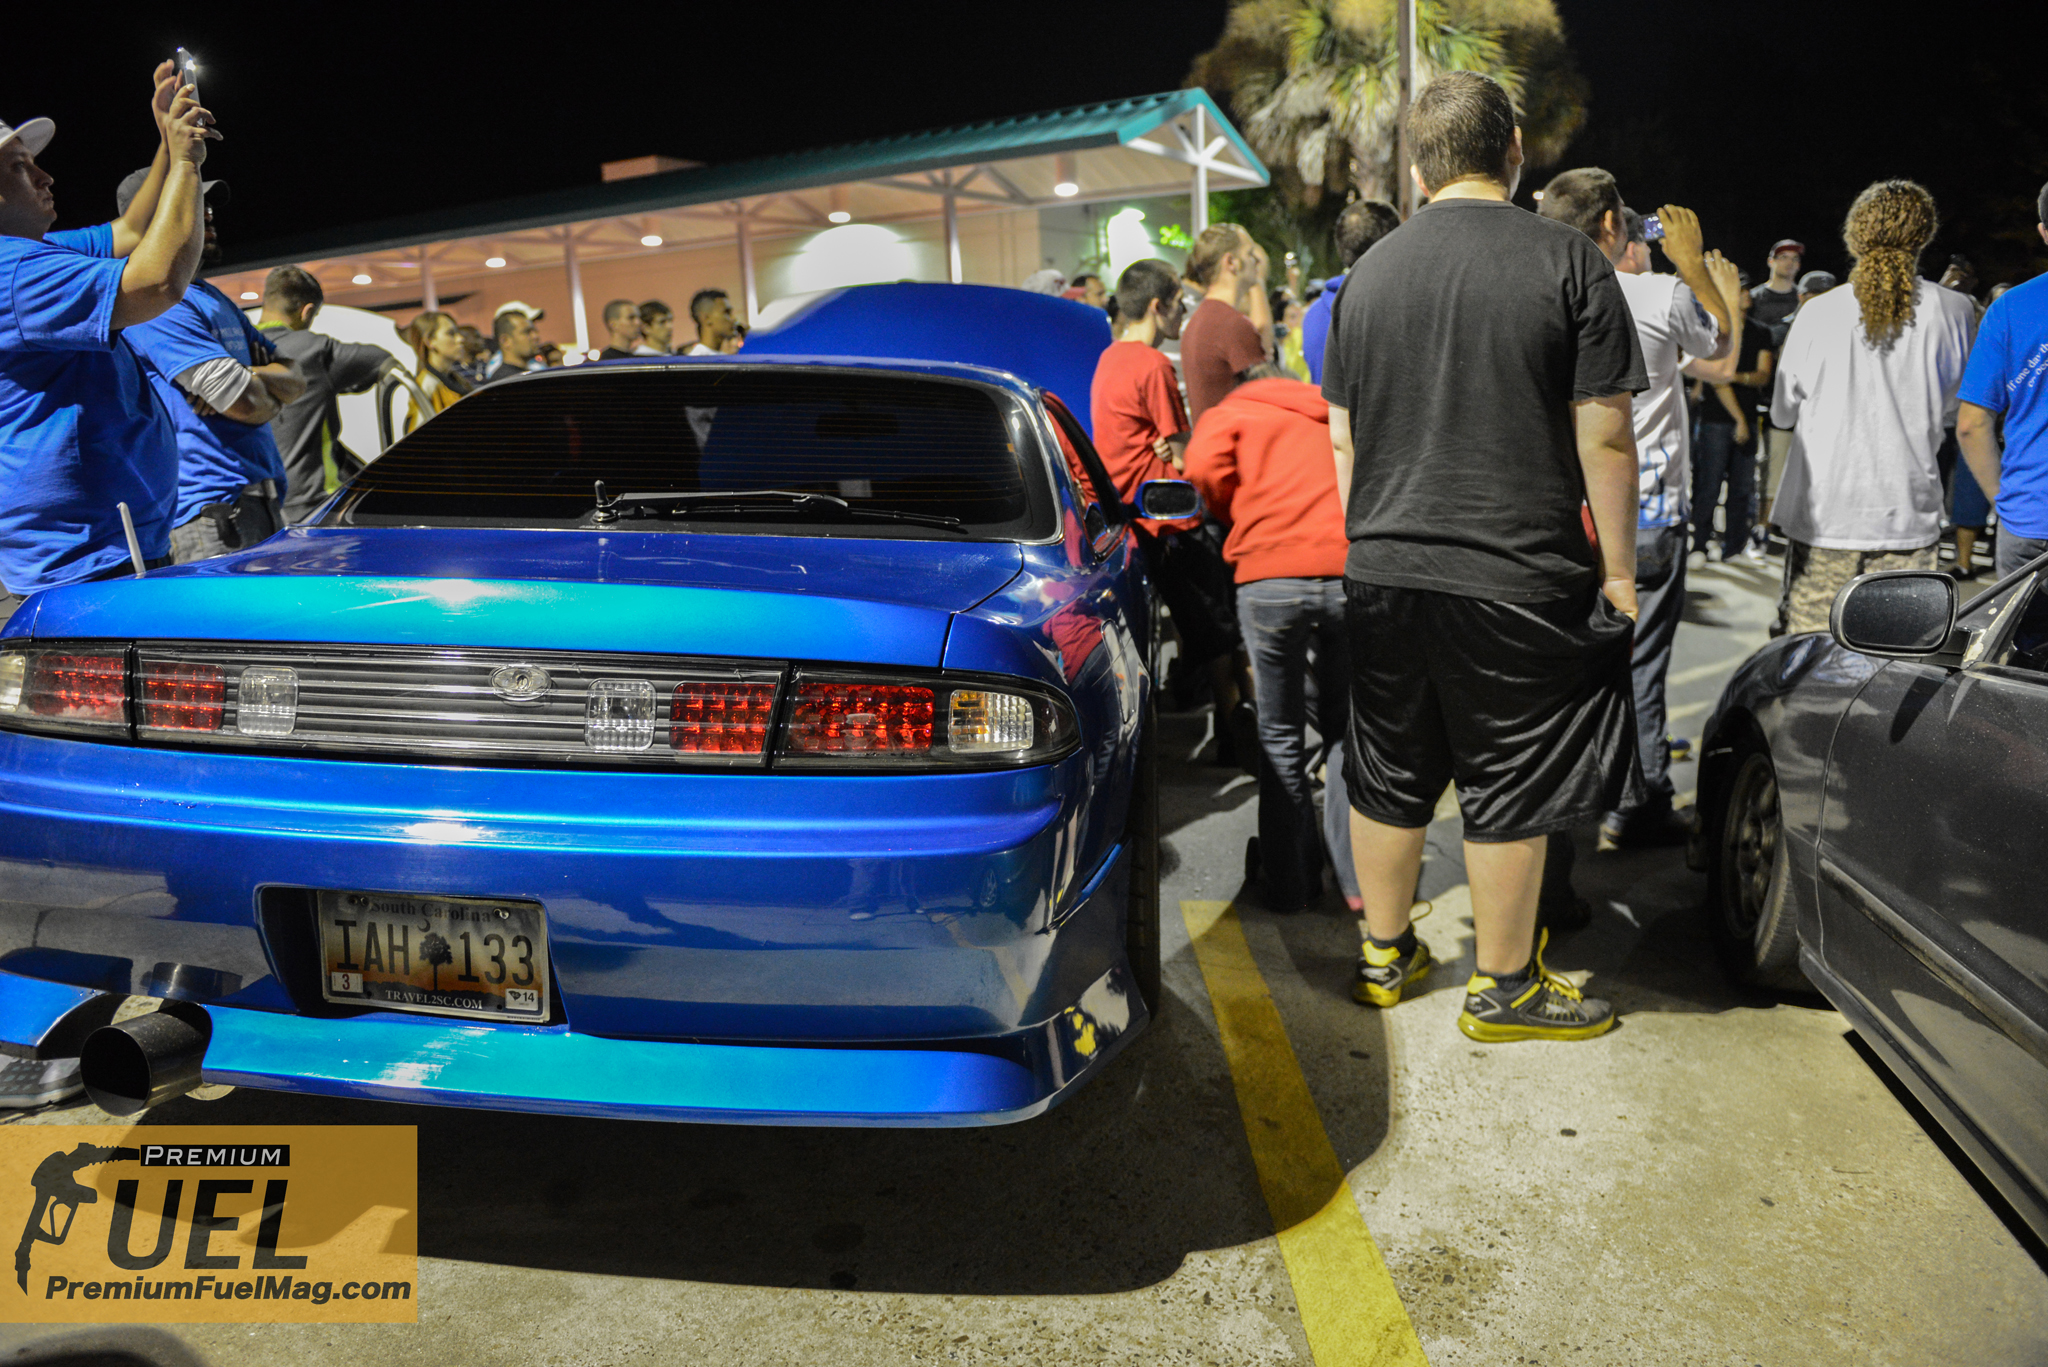 Paul Walker Memorial Car meet